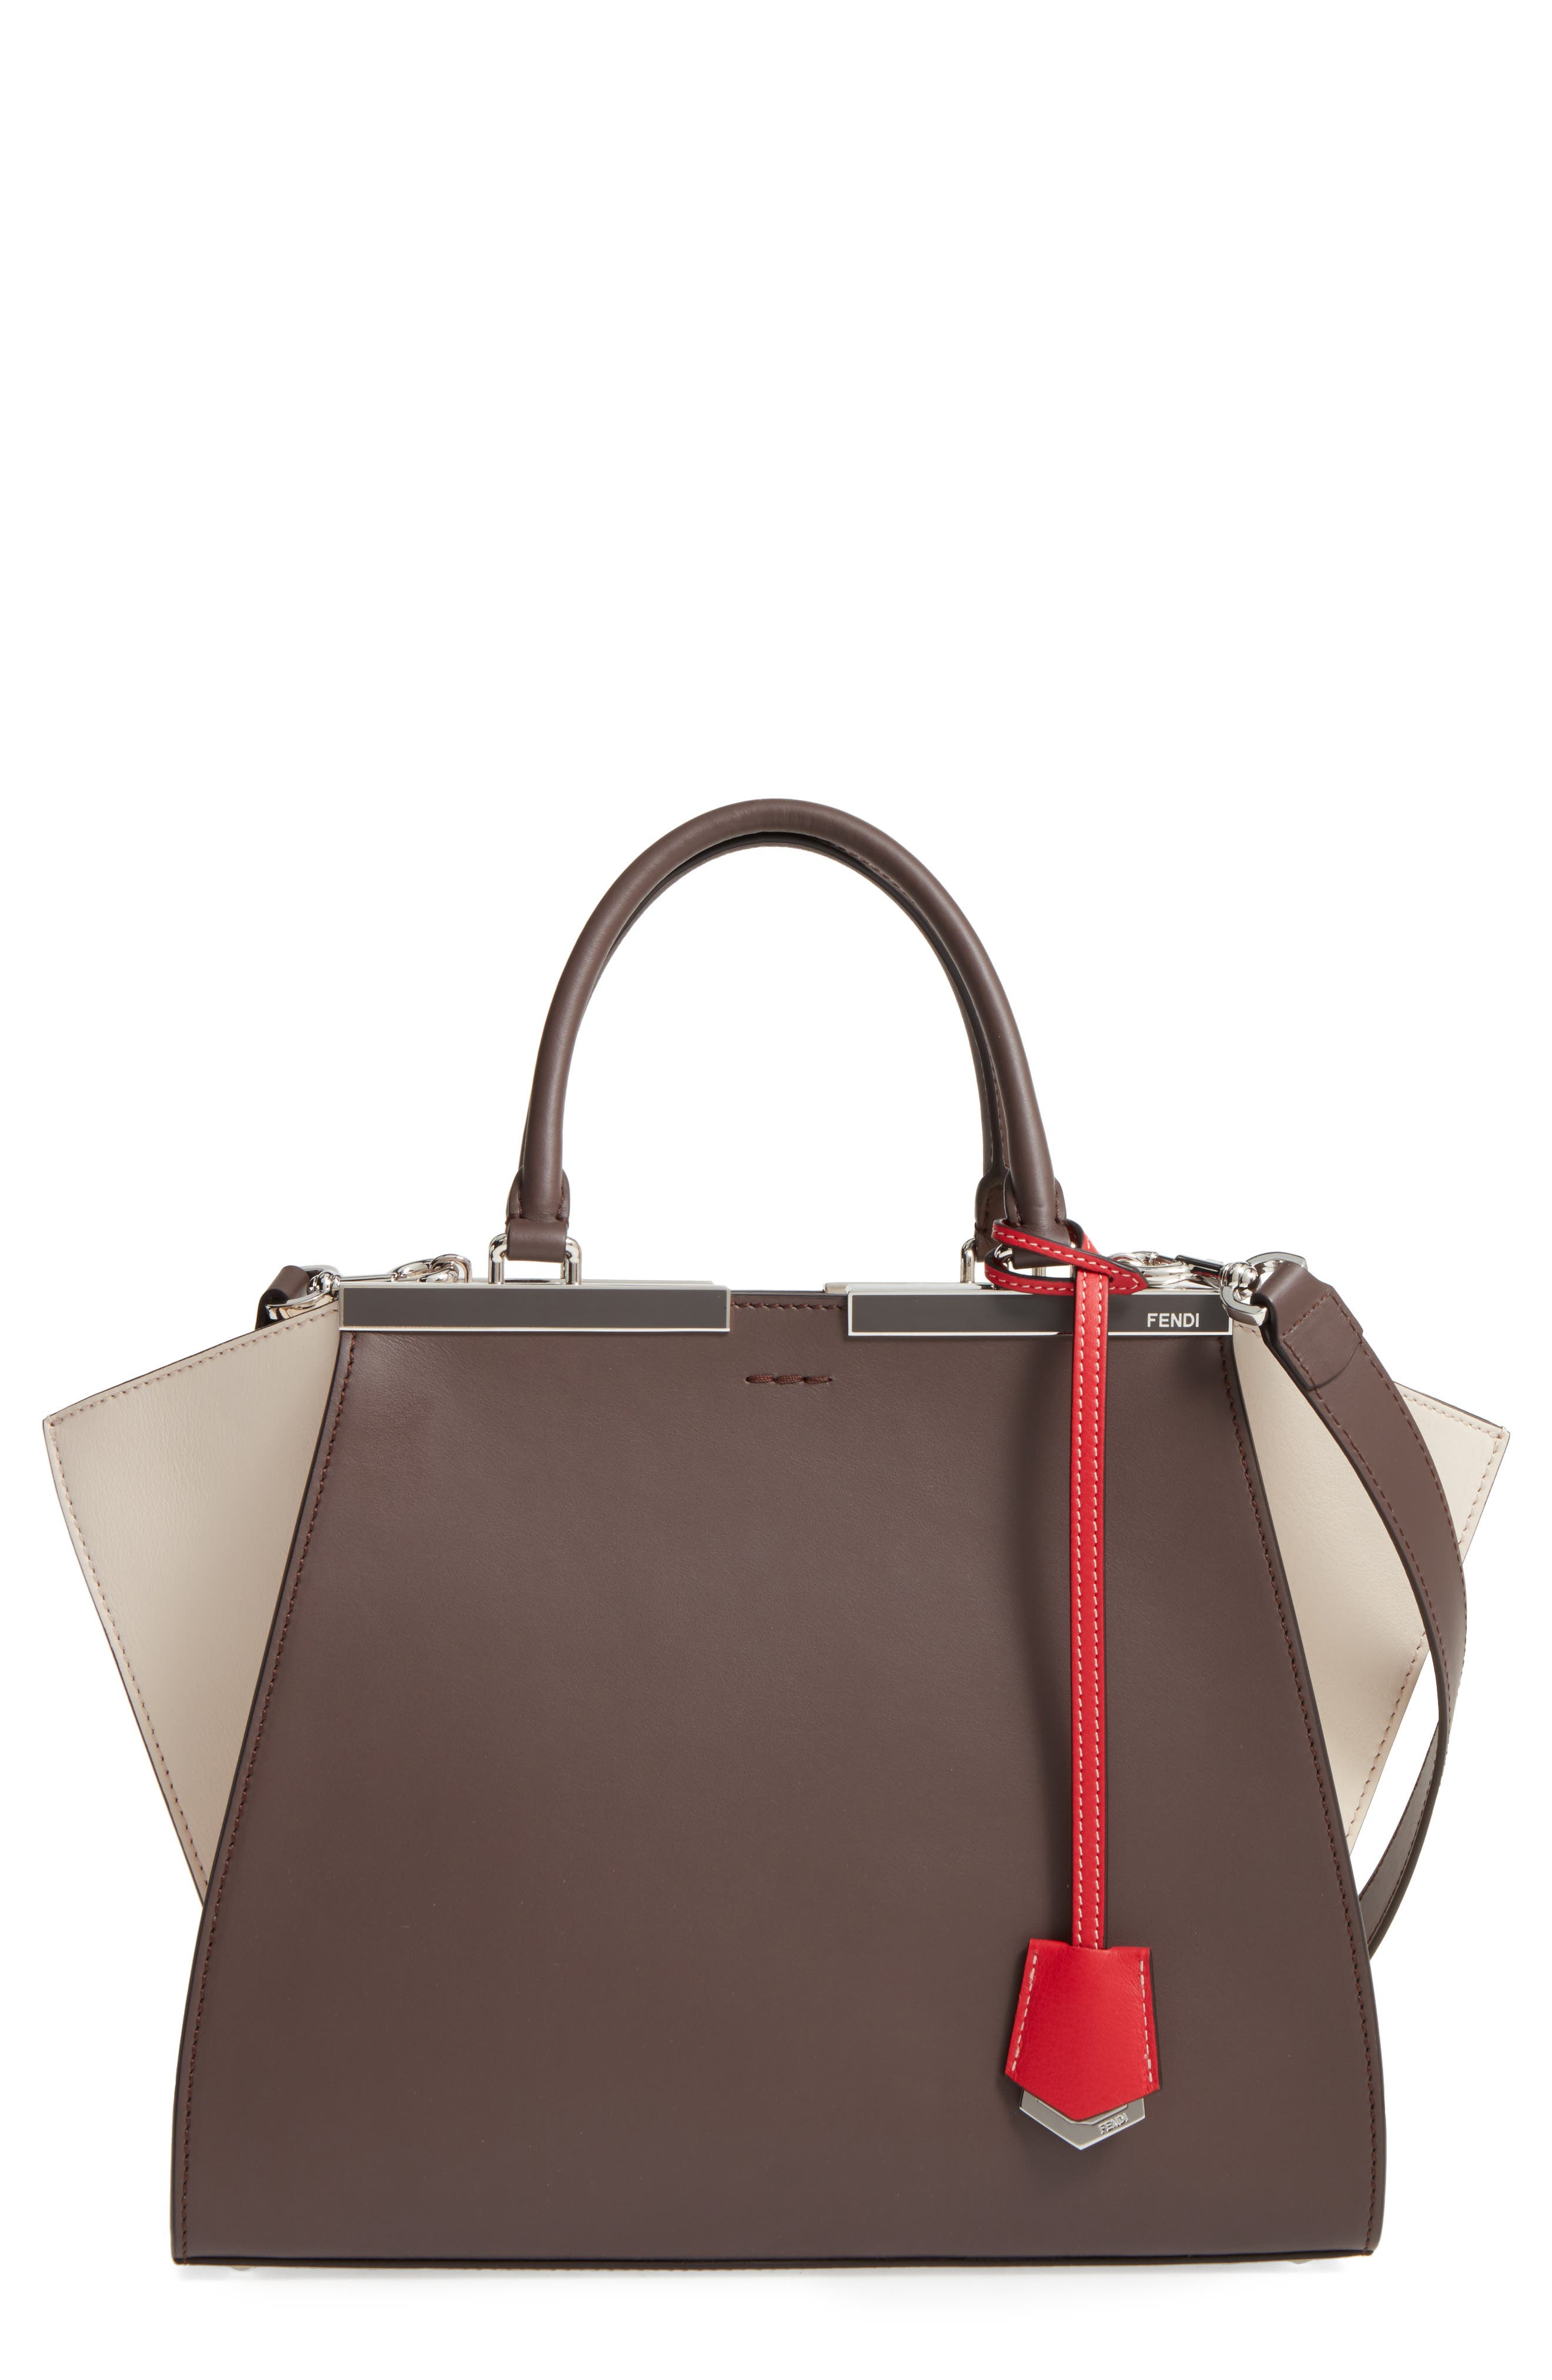 3Jours Colorblock Calfskin Leather Shopper,                             Main thumbnail 1, color,                             CHOCOLATE/ WHITE